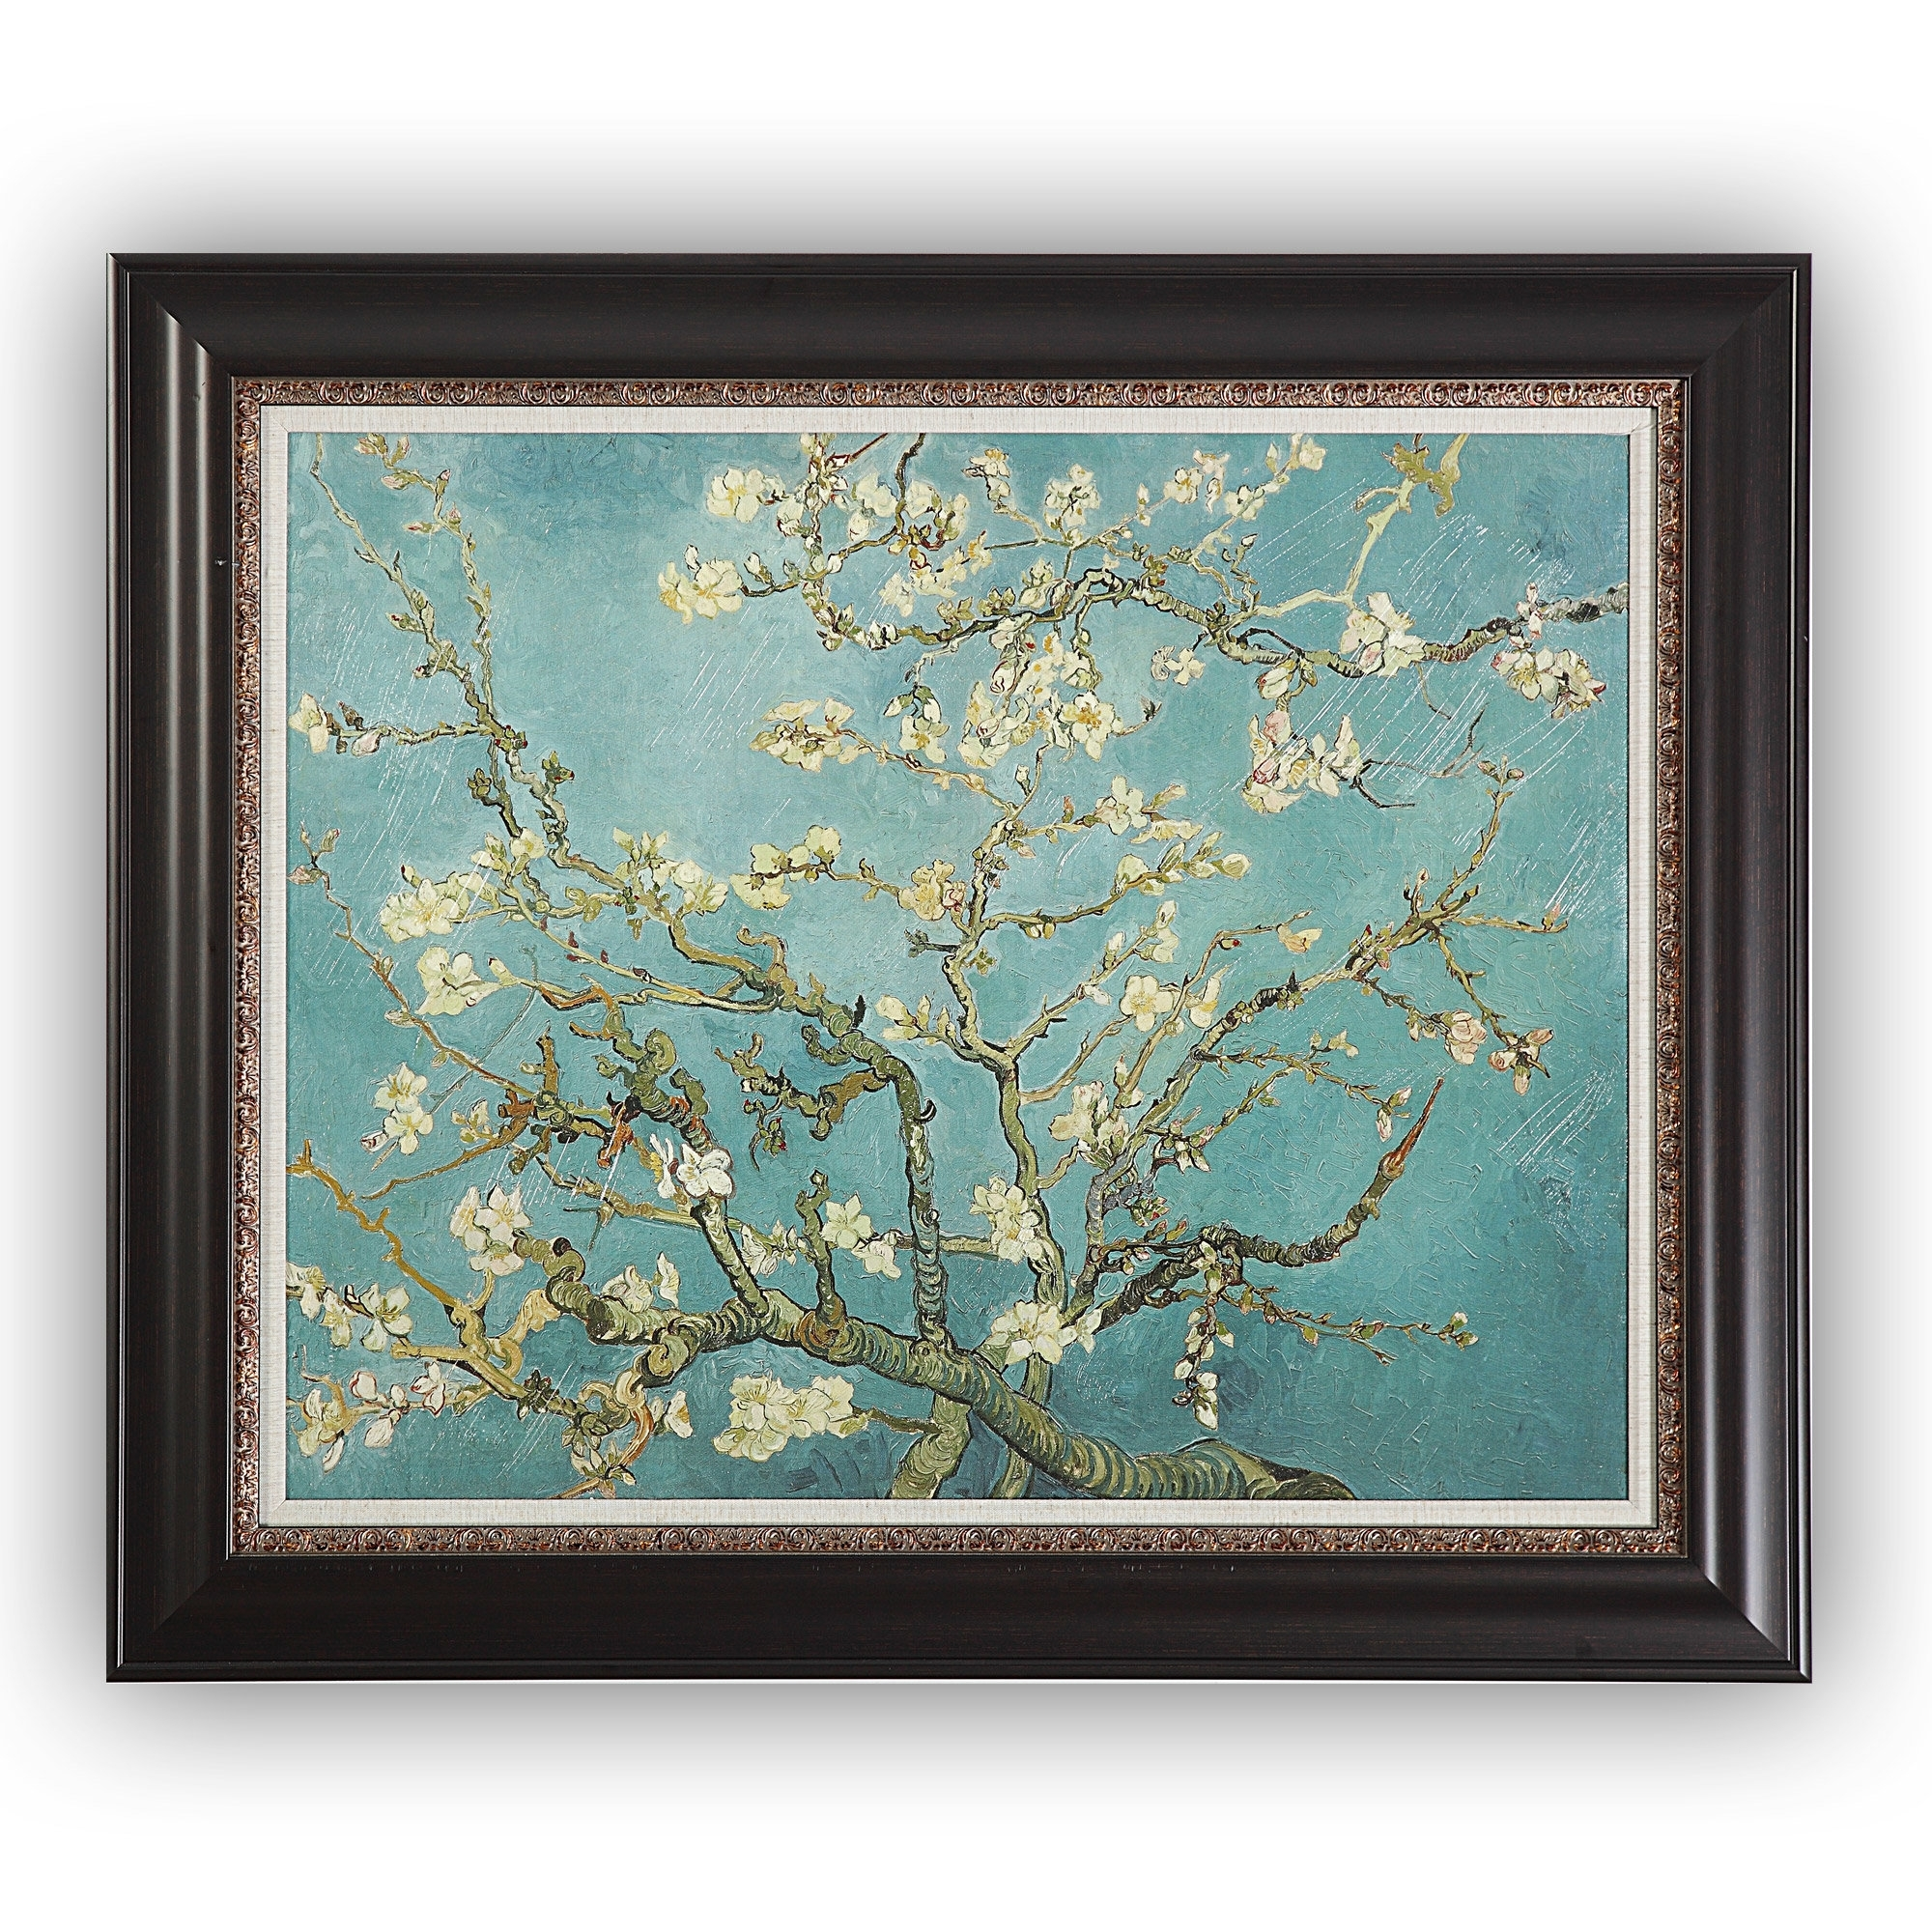 Almond Blossom'vincent Van Gogh Framed Painting Print For Current Almond Blossoms Vincent Van Gogh Wall Art (View 2 of 20)